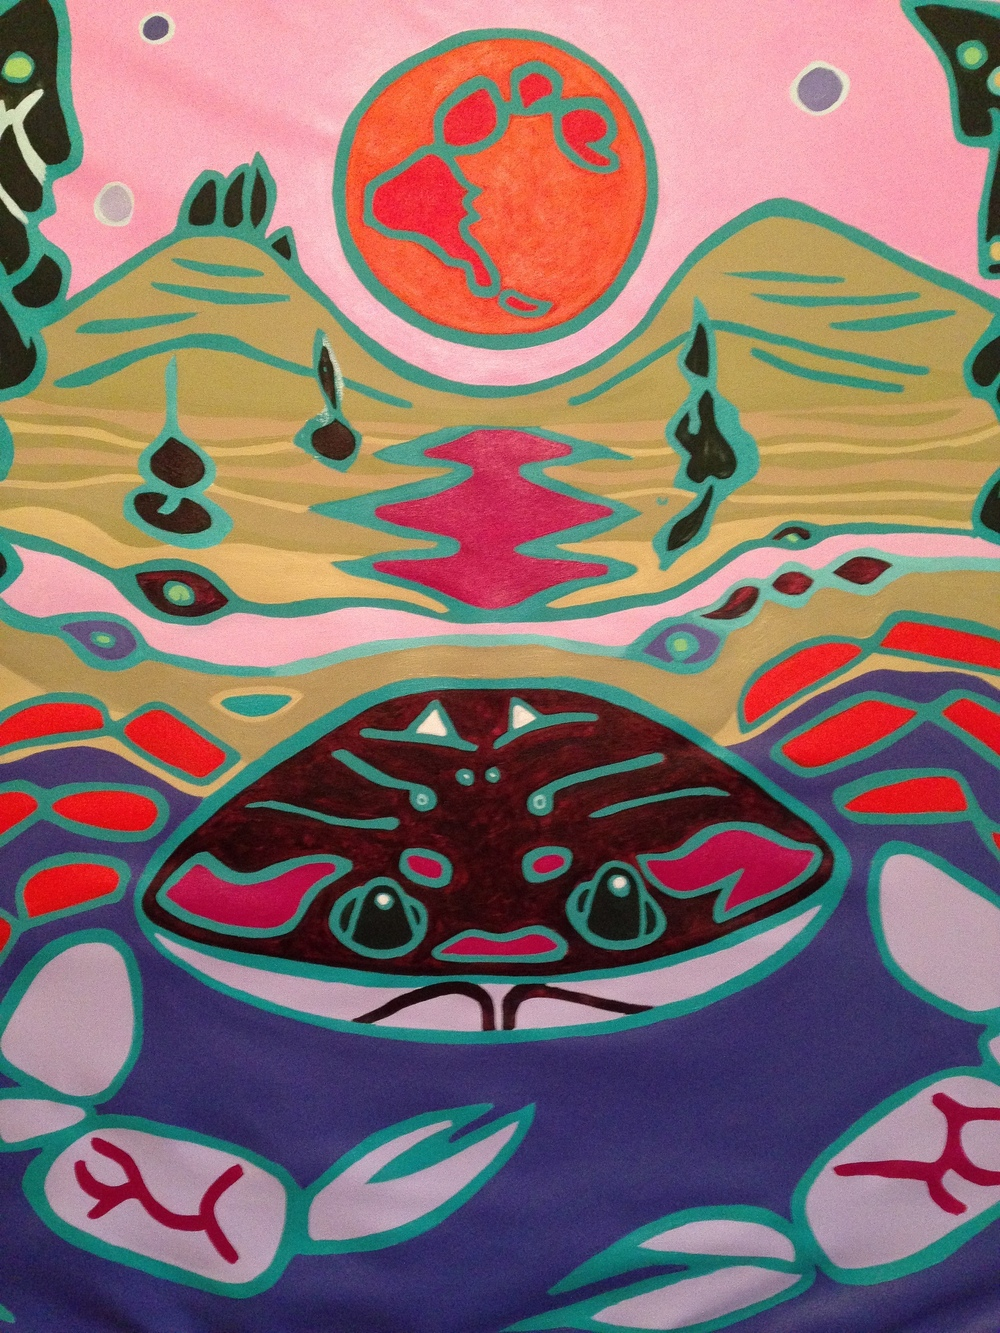 Moon Crab (2015) acrylic and emulsion on canvas, 100x80cm